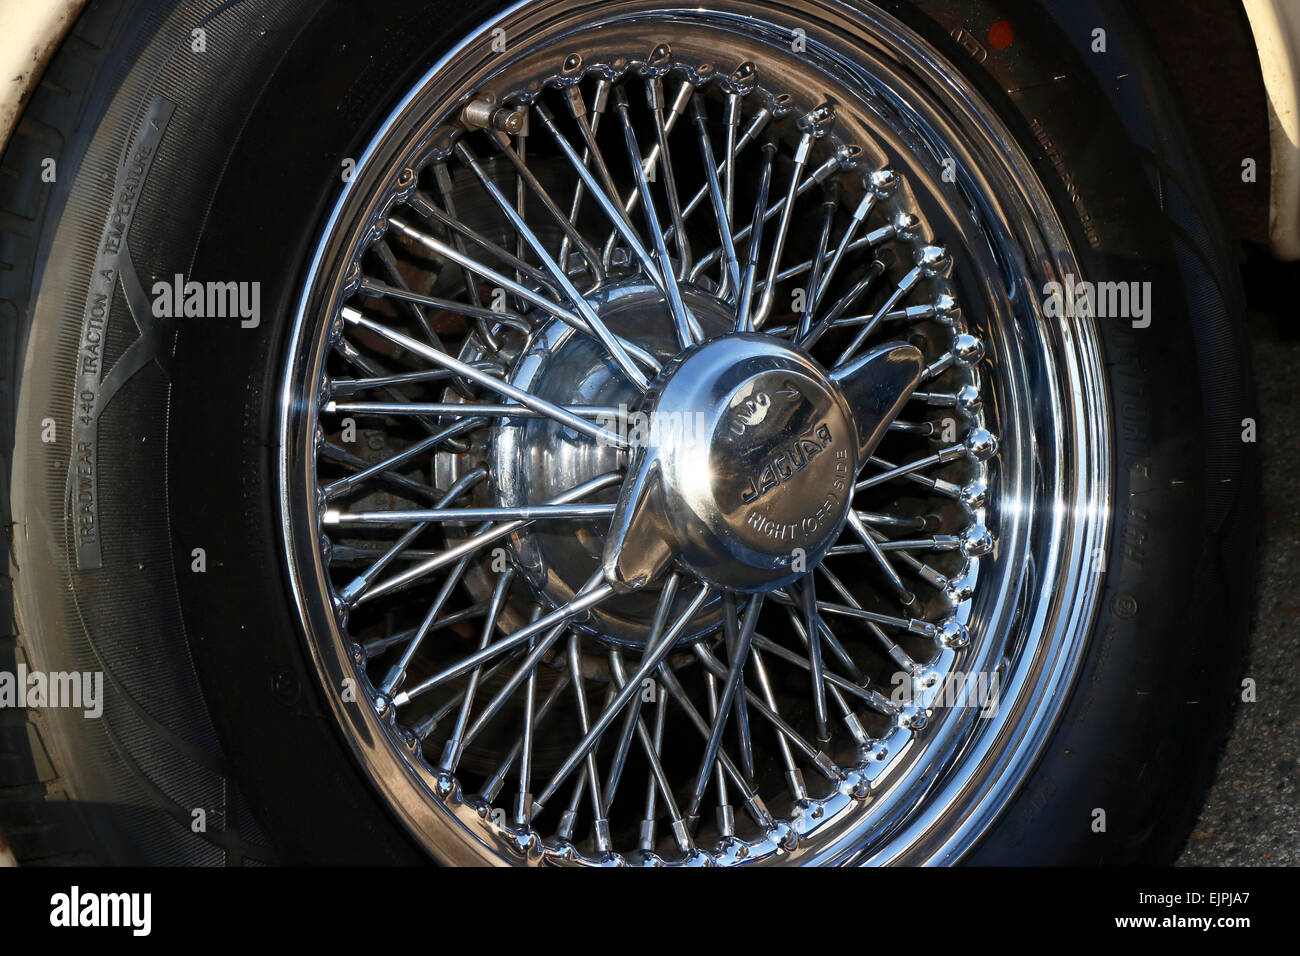 Wire Wheel Stock Photos & Wire Wheel Stock Images - Alamy